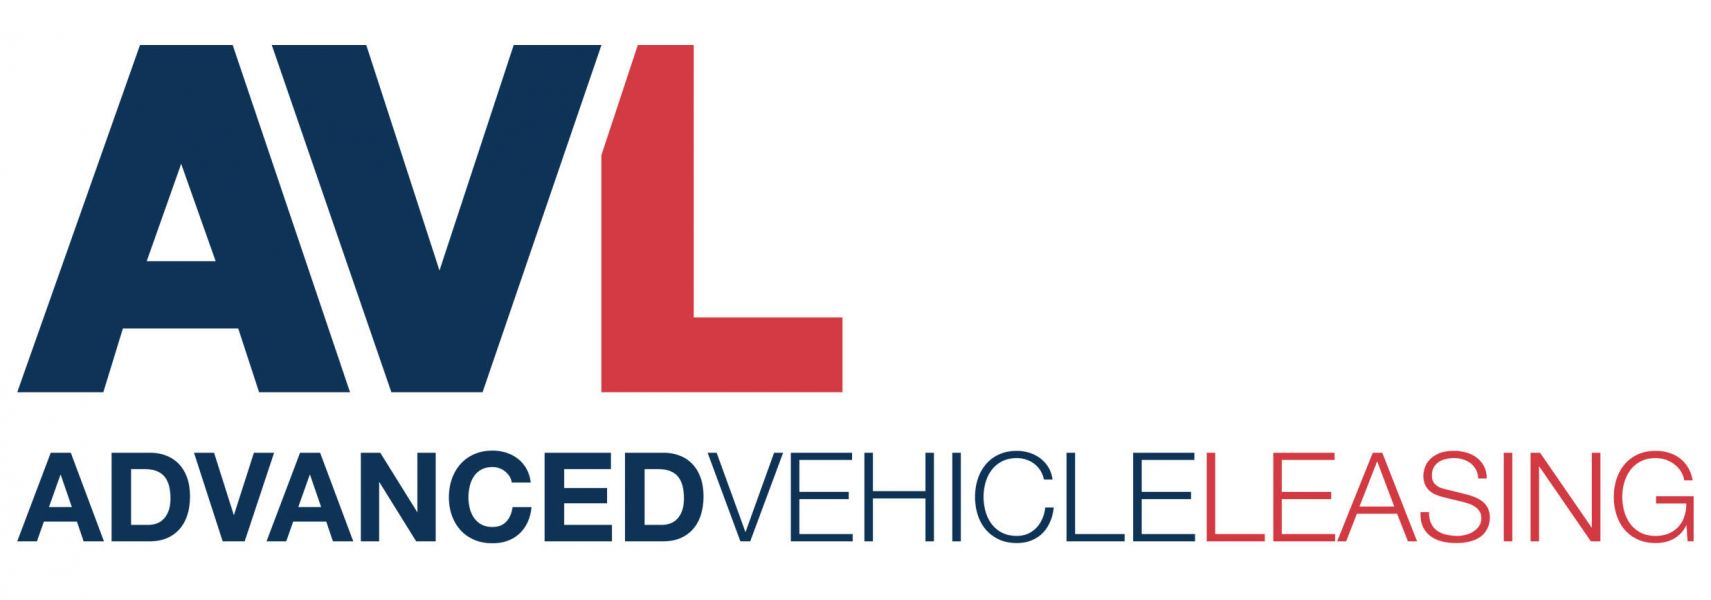 Advanced Vehicle Leasing